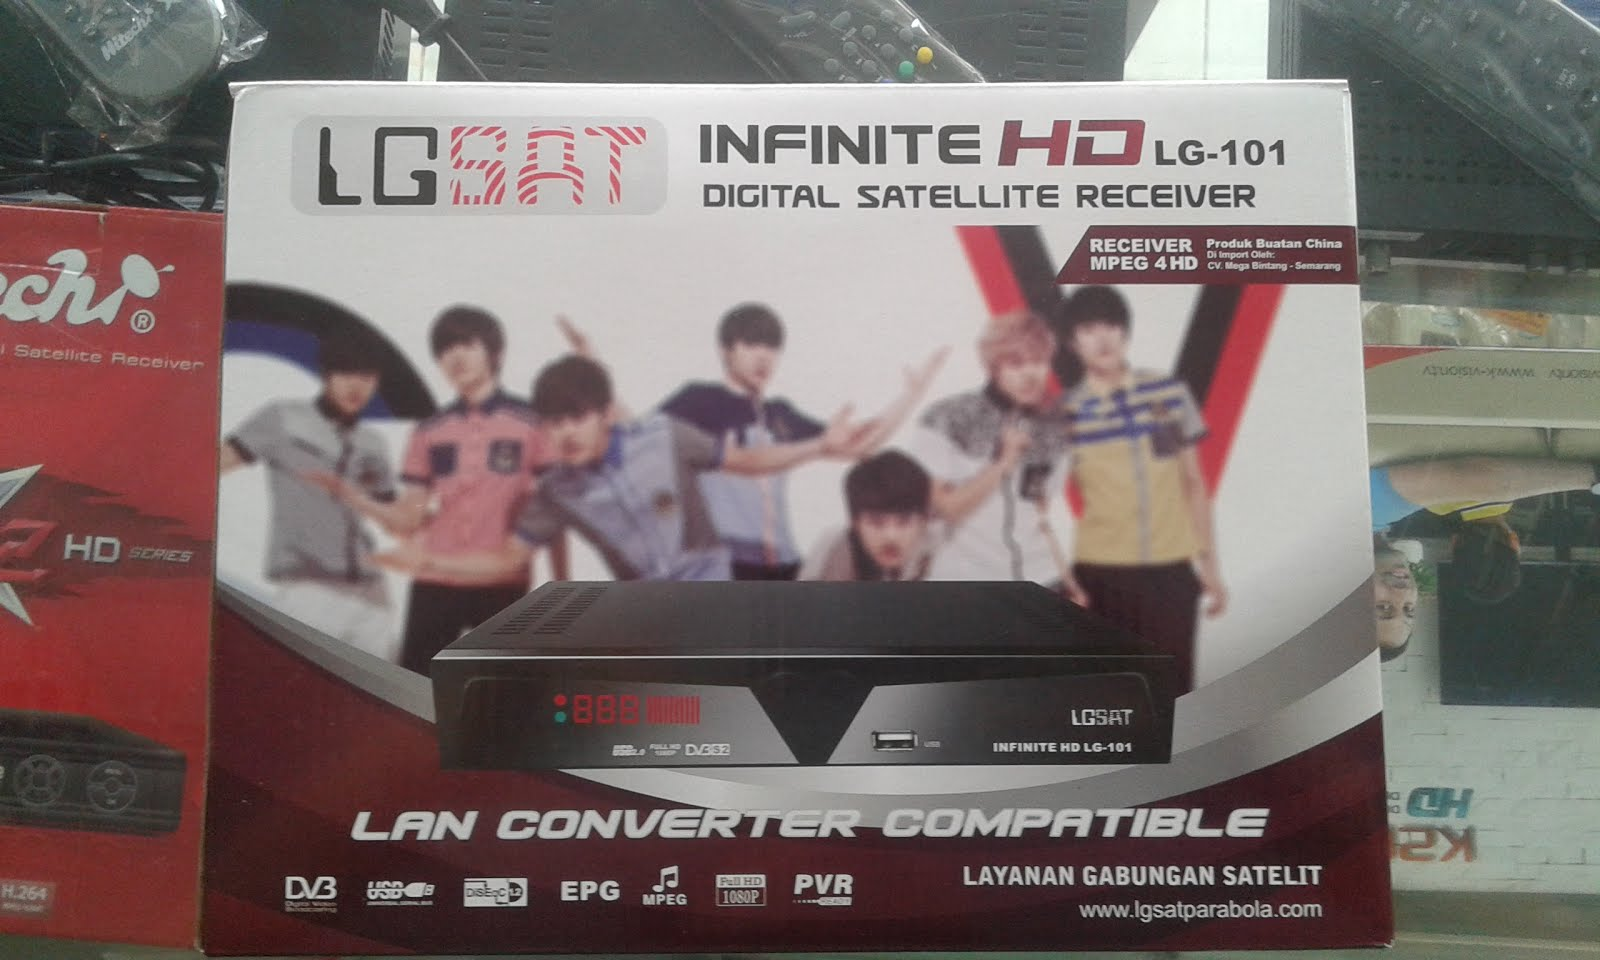 LGSat INFINITE HD